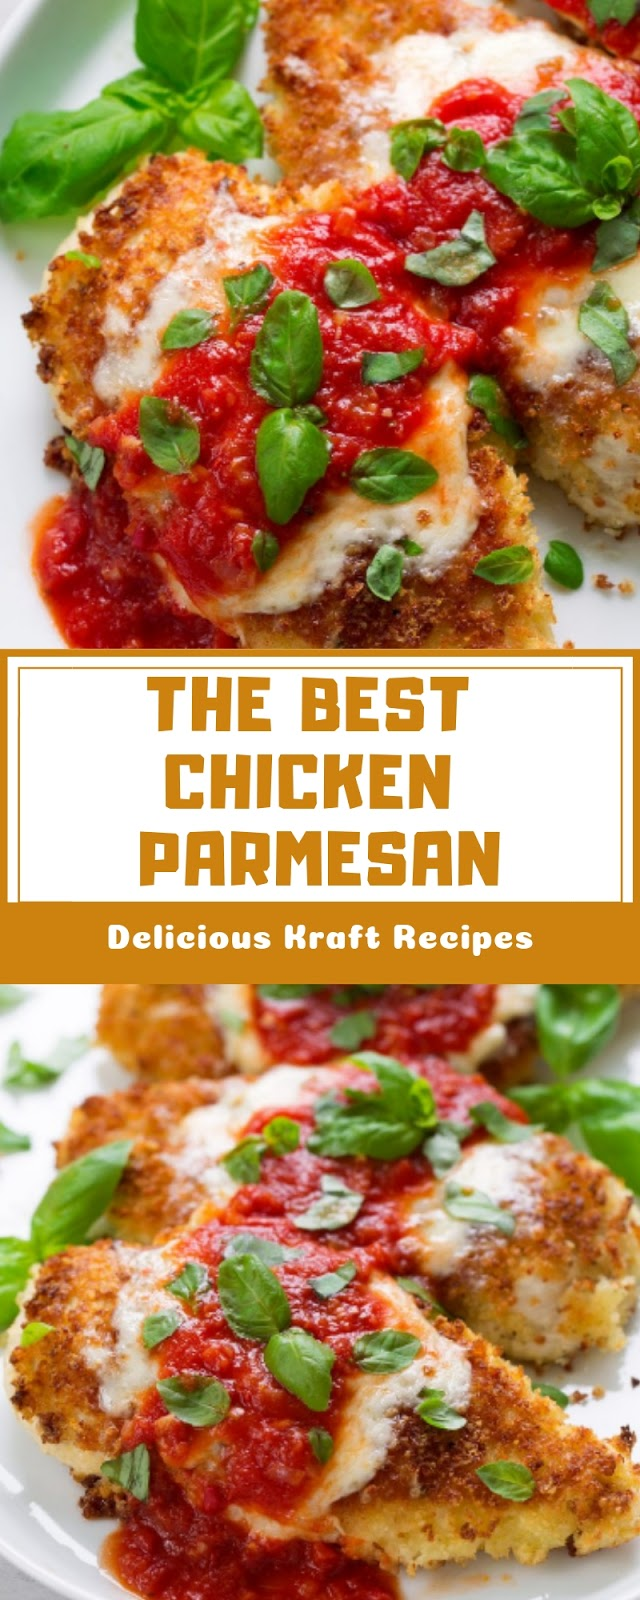 THE BEST CHICKEN PARMESAN